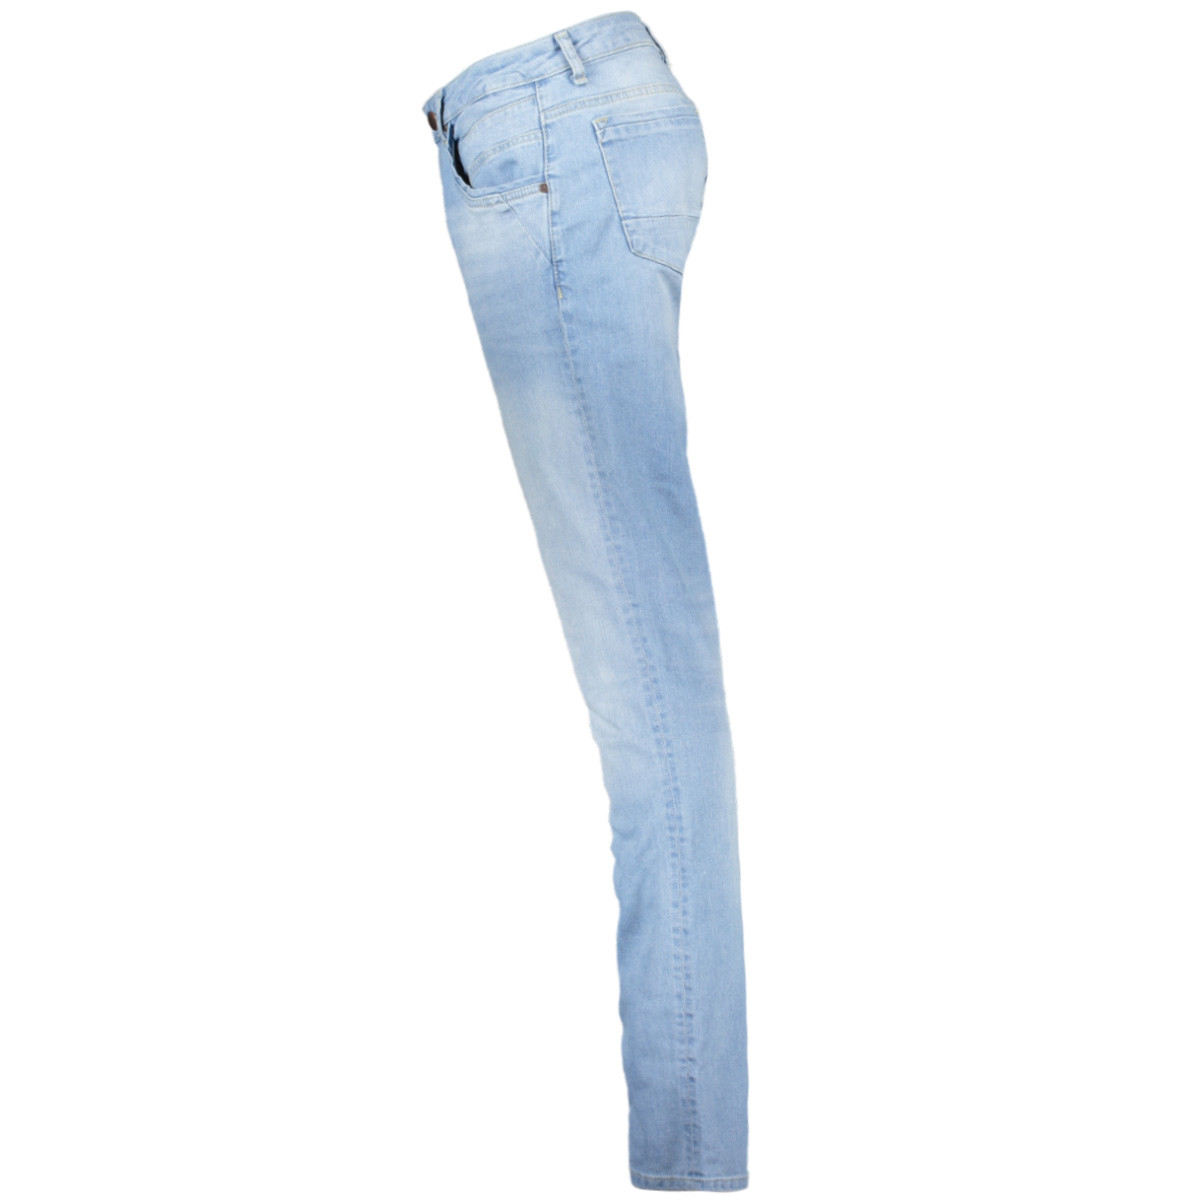 henlow regular 76738 cars jeans 75 bleached used